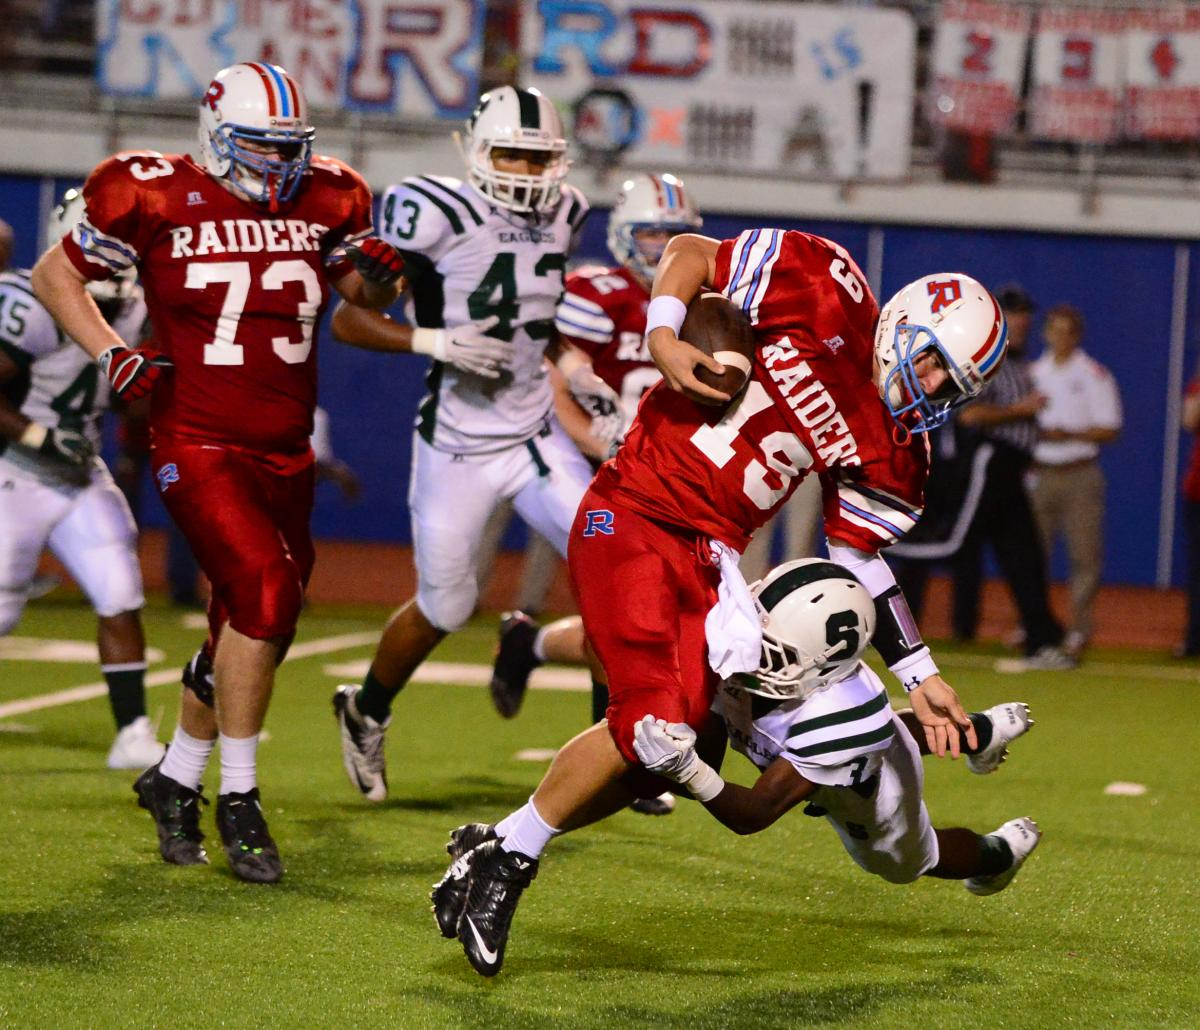 Archbishop Rummel (Metairie, La.) quarterback Chase Fourcade had his hand in six touchdowns in his team's 36-14 defeat of Archbishop Shaw (Marrero) on Saturday. Photo by Bill Arthurs.